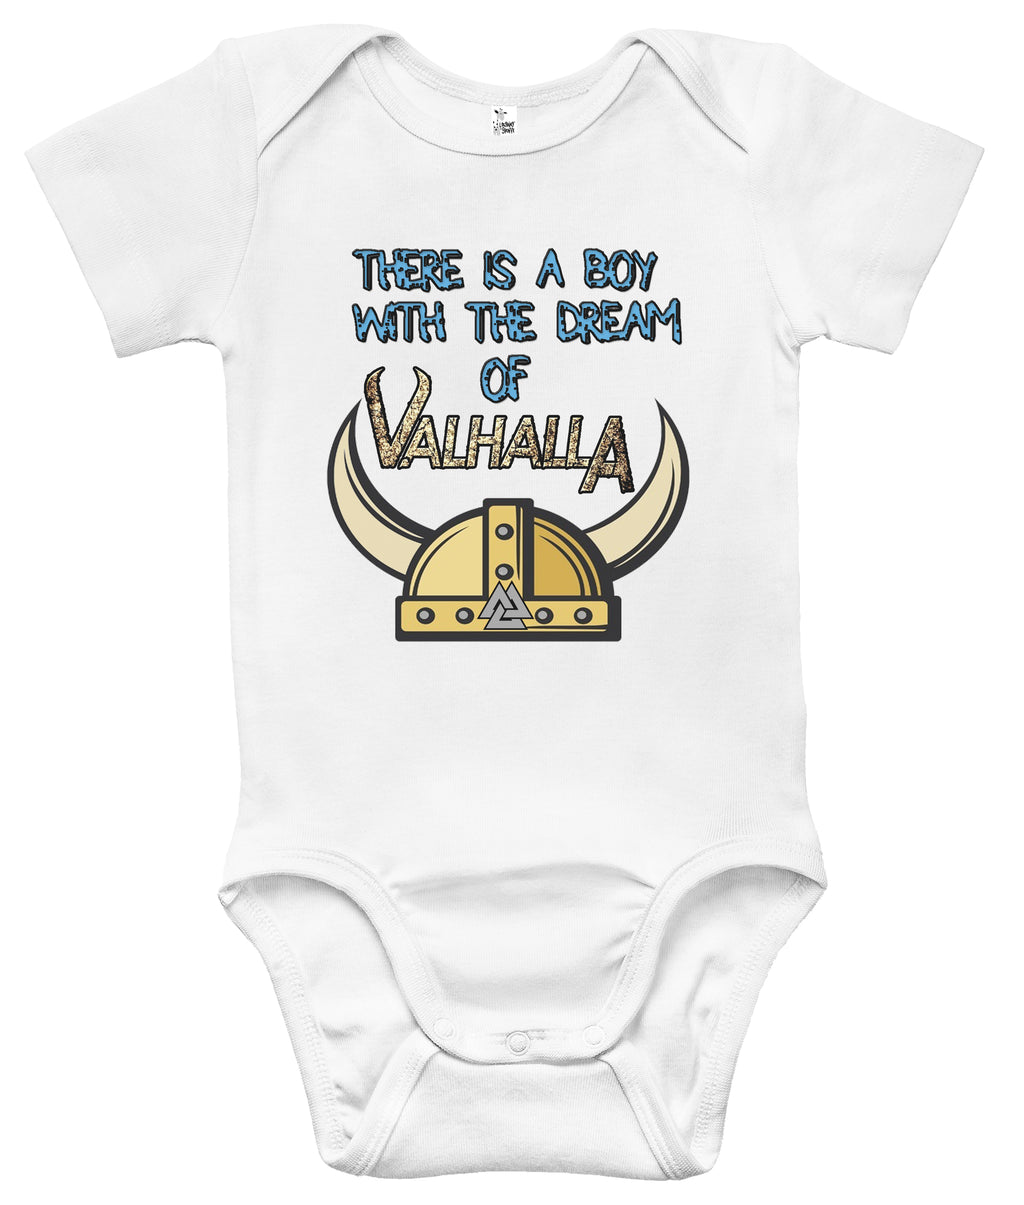 Baby Bodysuit - There Is a Boy with the Dream of Valhalla Viking